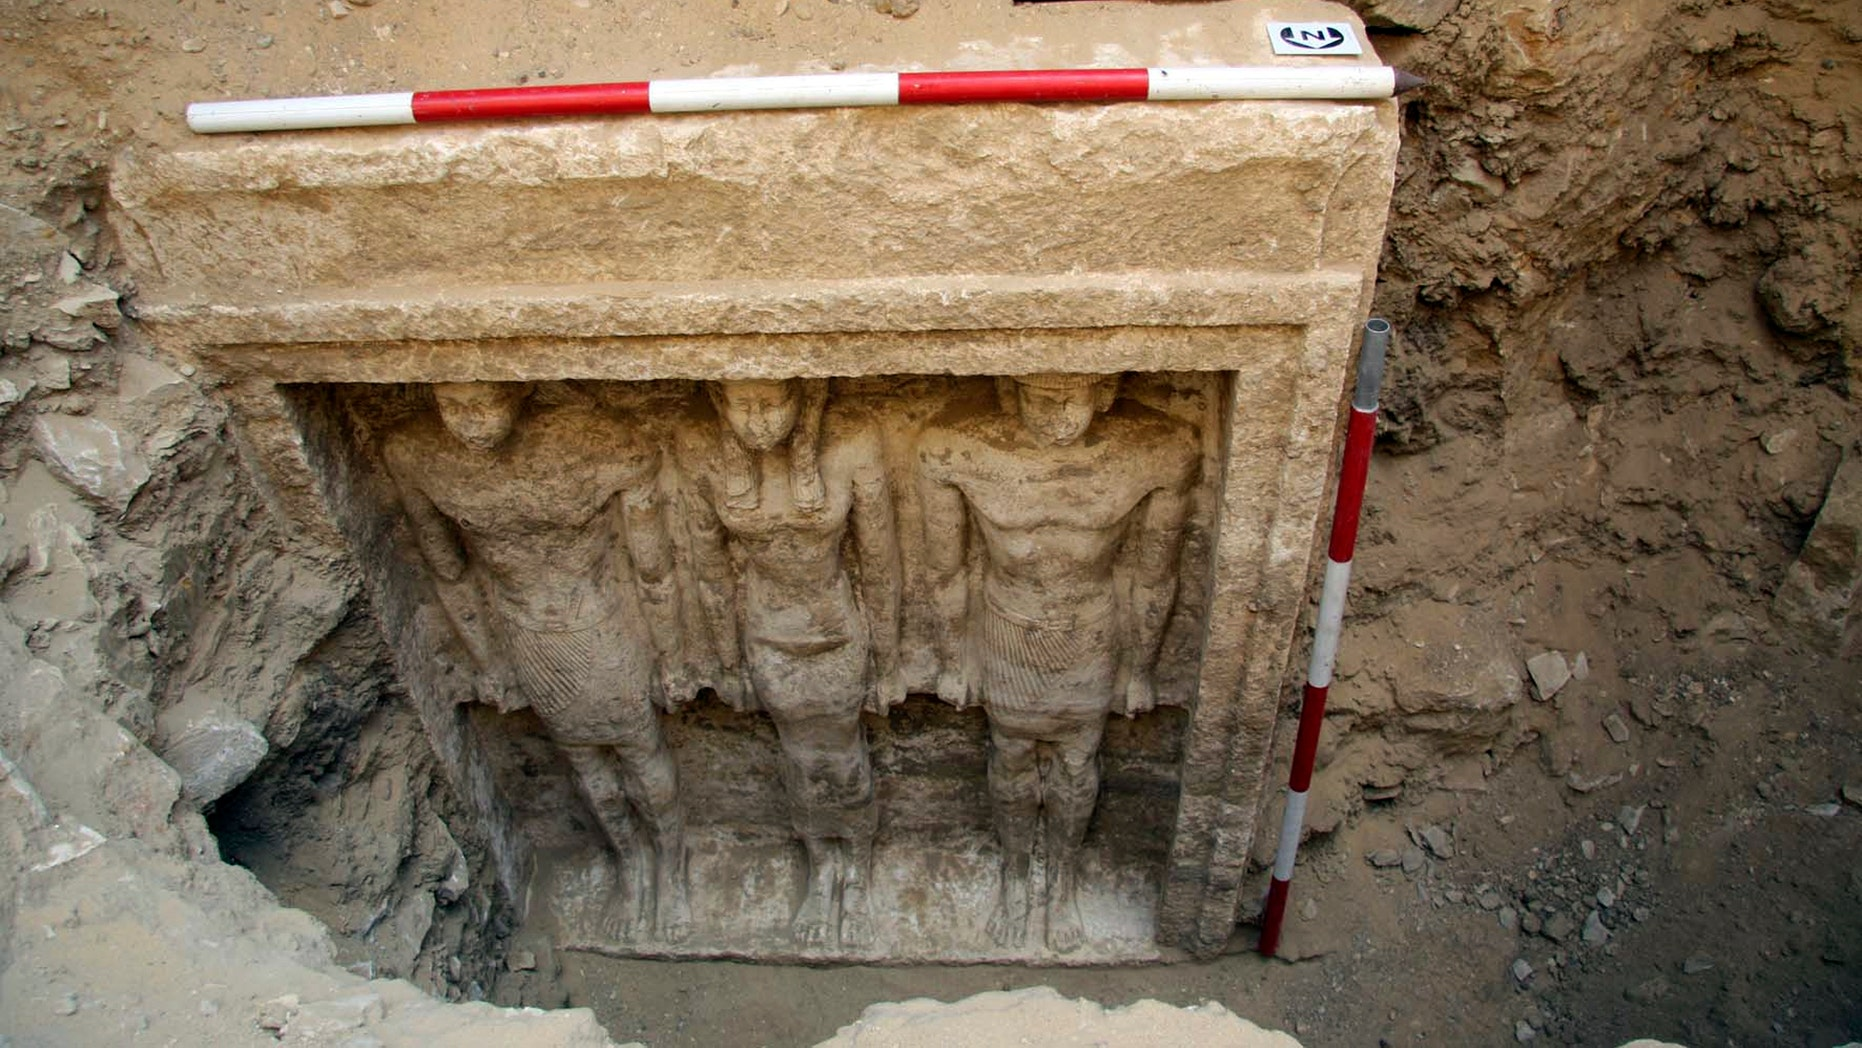 Oct. 11, 2012: This photo released Friday, Nov. 2, 2012 by Egypt's Supreme Council of Antiquities, shows recently discovered statues of two men and a woman in a complex of tombs, including one of a pharaonic princess, in the Abusir region, south of Cairo, Egypt.